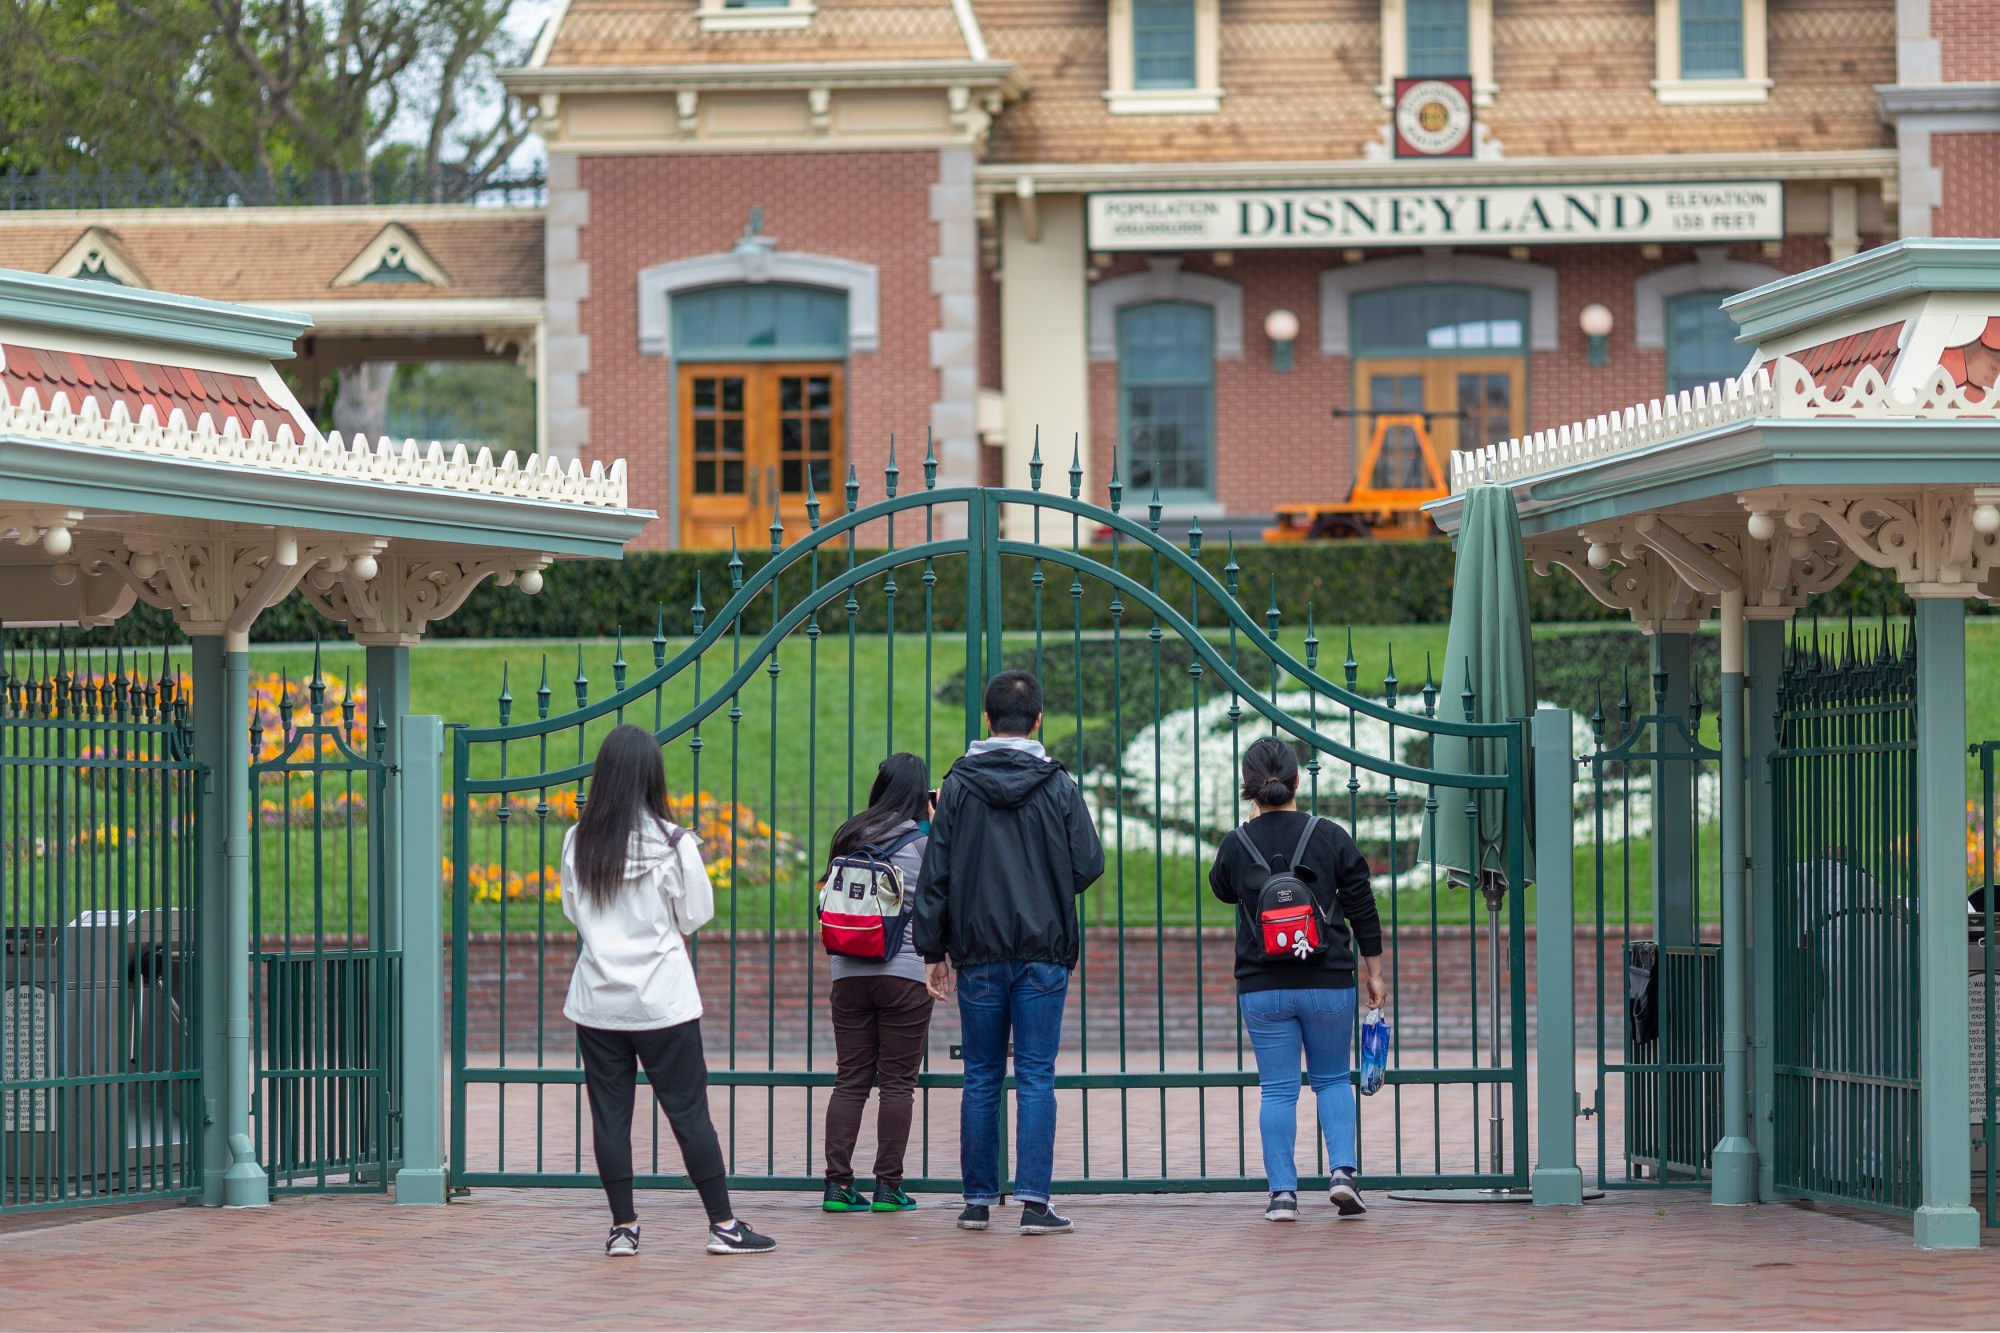 People stand outside the gates of Disneyland in Anaheim on the first day of the park's closure due to coronavirus, March 14, 2020. (Credit: David McNew / AFP / Getty Images)